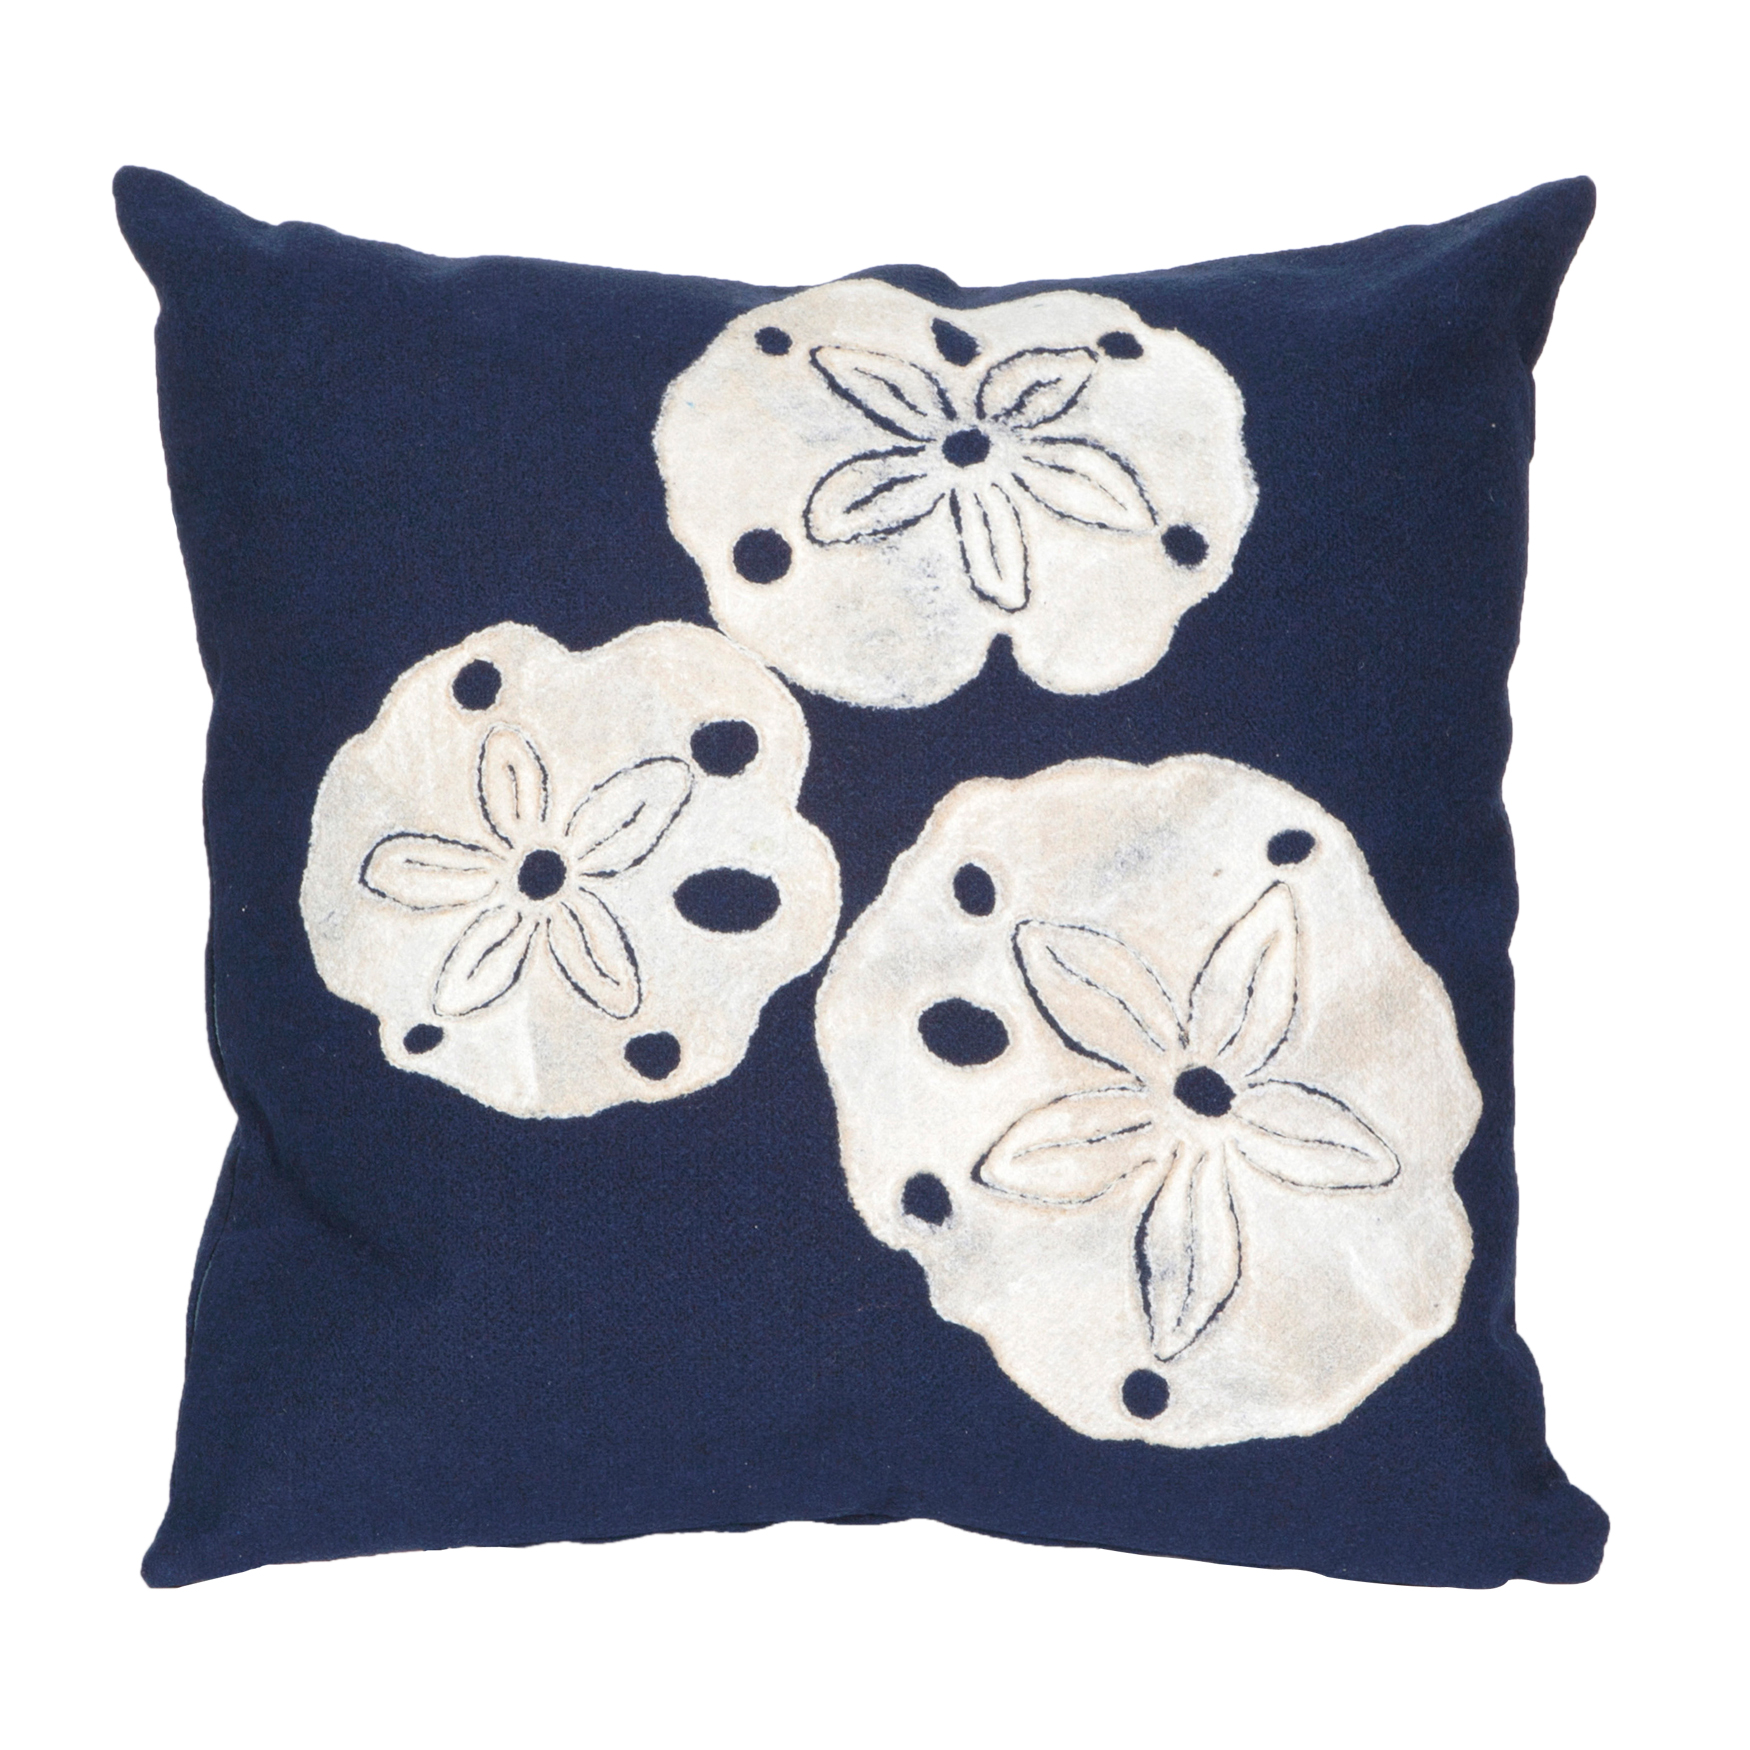 Sand Dollar Throw Pillow, NAVY